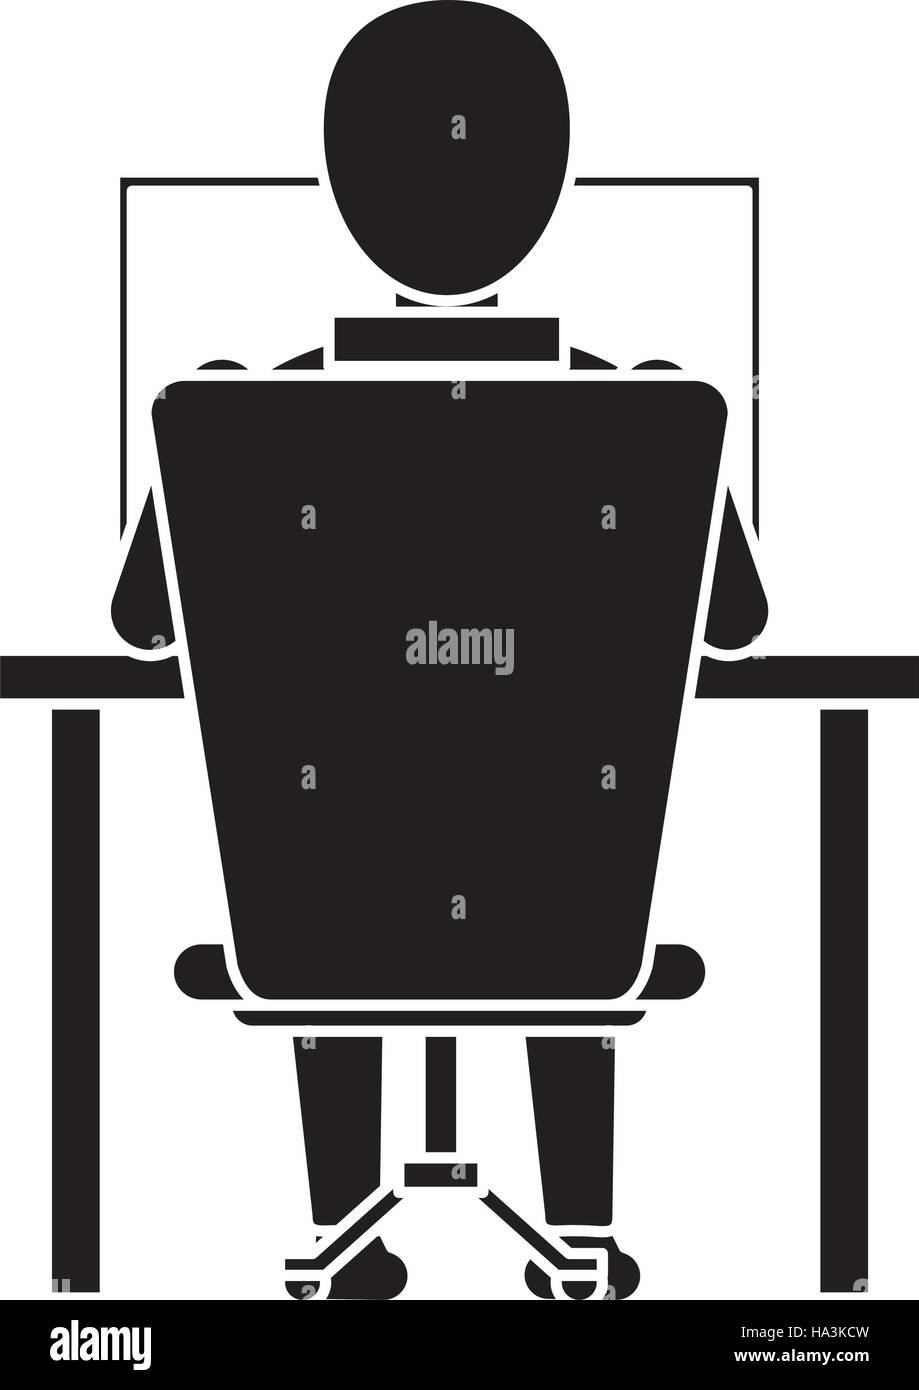 Laptop Chair Desk Silhouette Guy Back Working Laptop Chair Desk Stock Vector Art